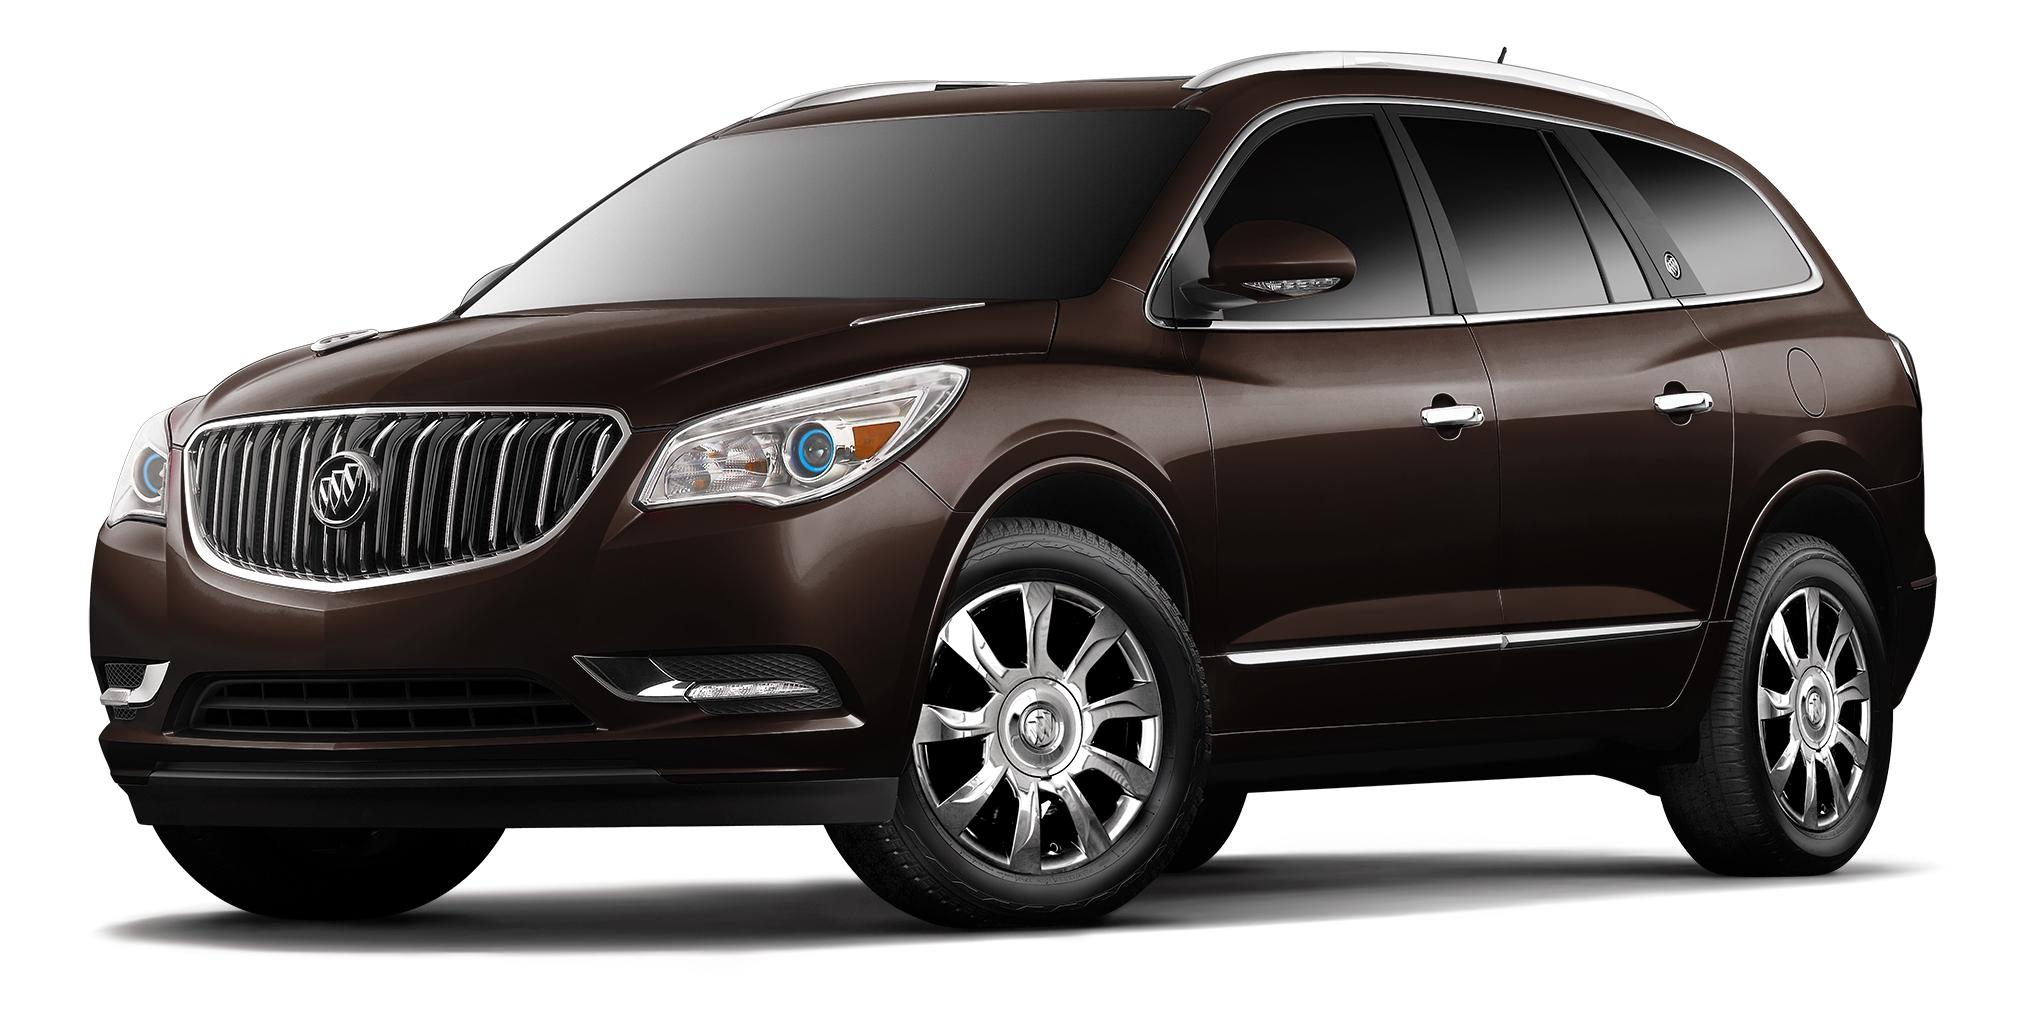 2017 Buick Enclave Dark Chocolate